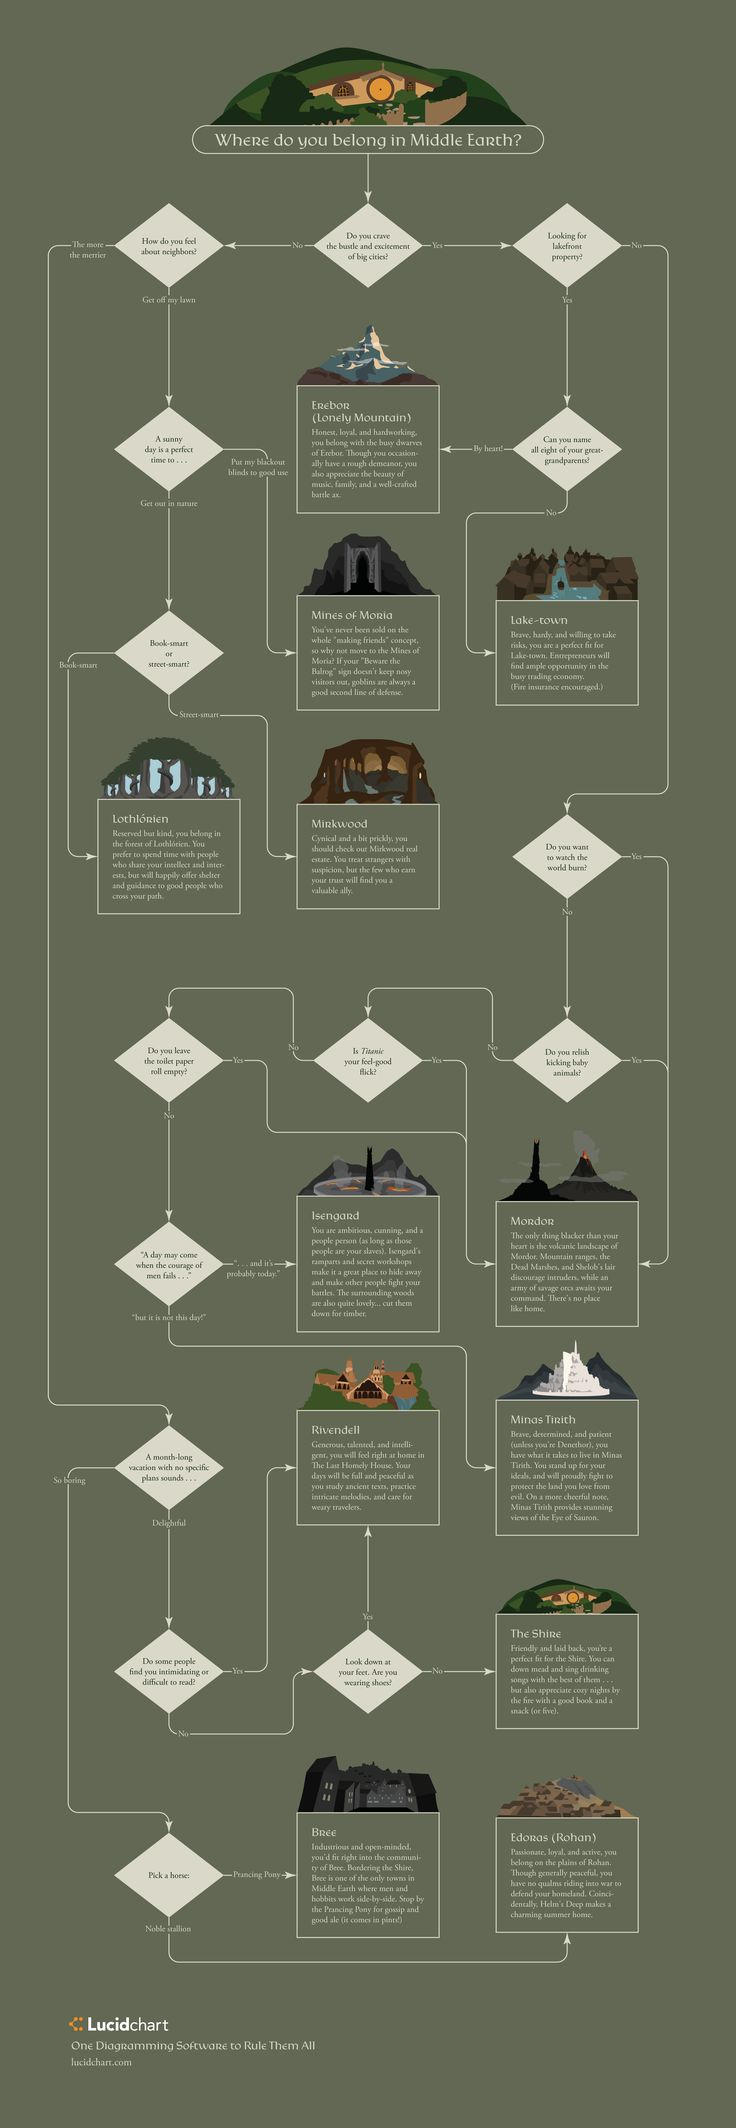 Misty mountains cold. Dungeons deep, and caverns old. Fifteen years ago, Peter Jackson brought Tolkien's Middle Earth to life with the release of The Lord of the Rings: The Fellowship of the Ring. But where in Middle Earth should you live? Take this flowchart quiz to find out!